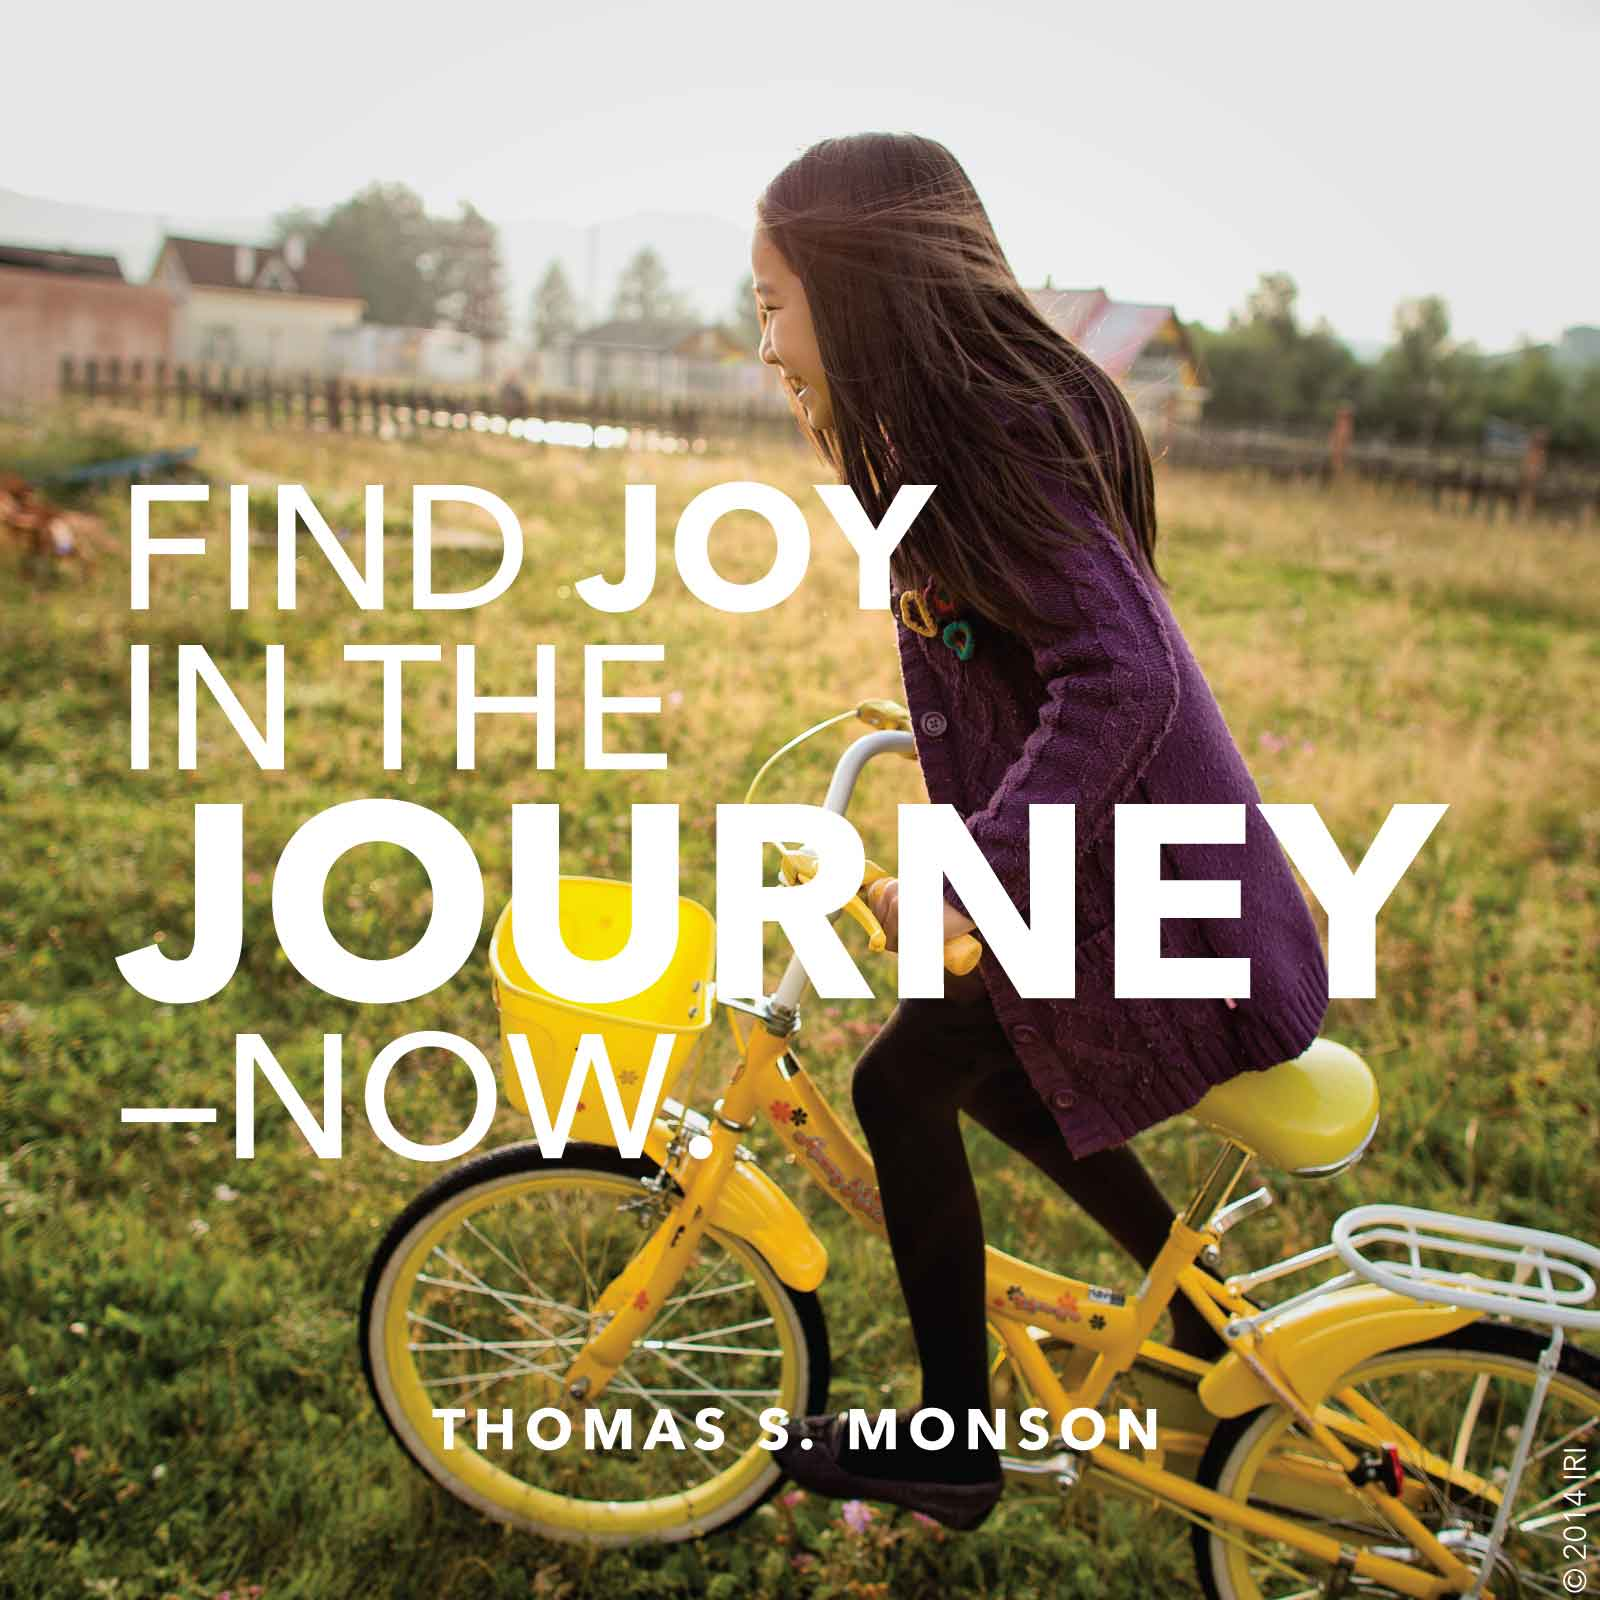 meme-monson-joy-journey